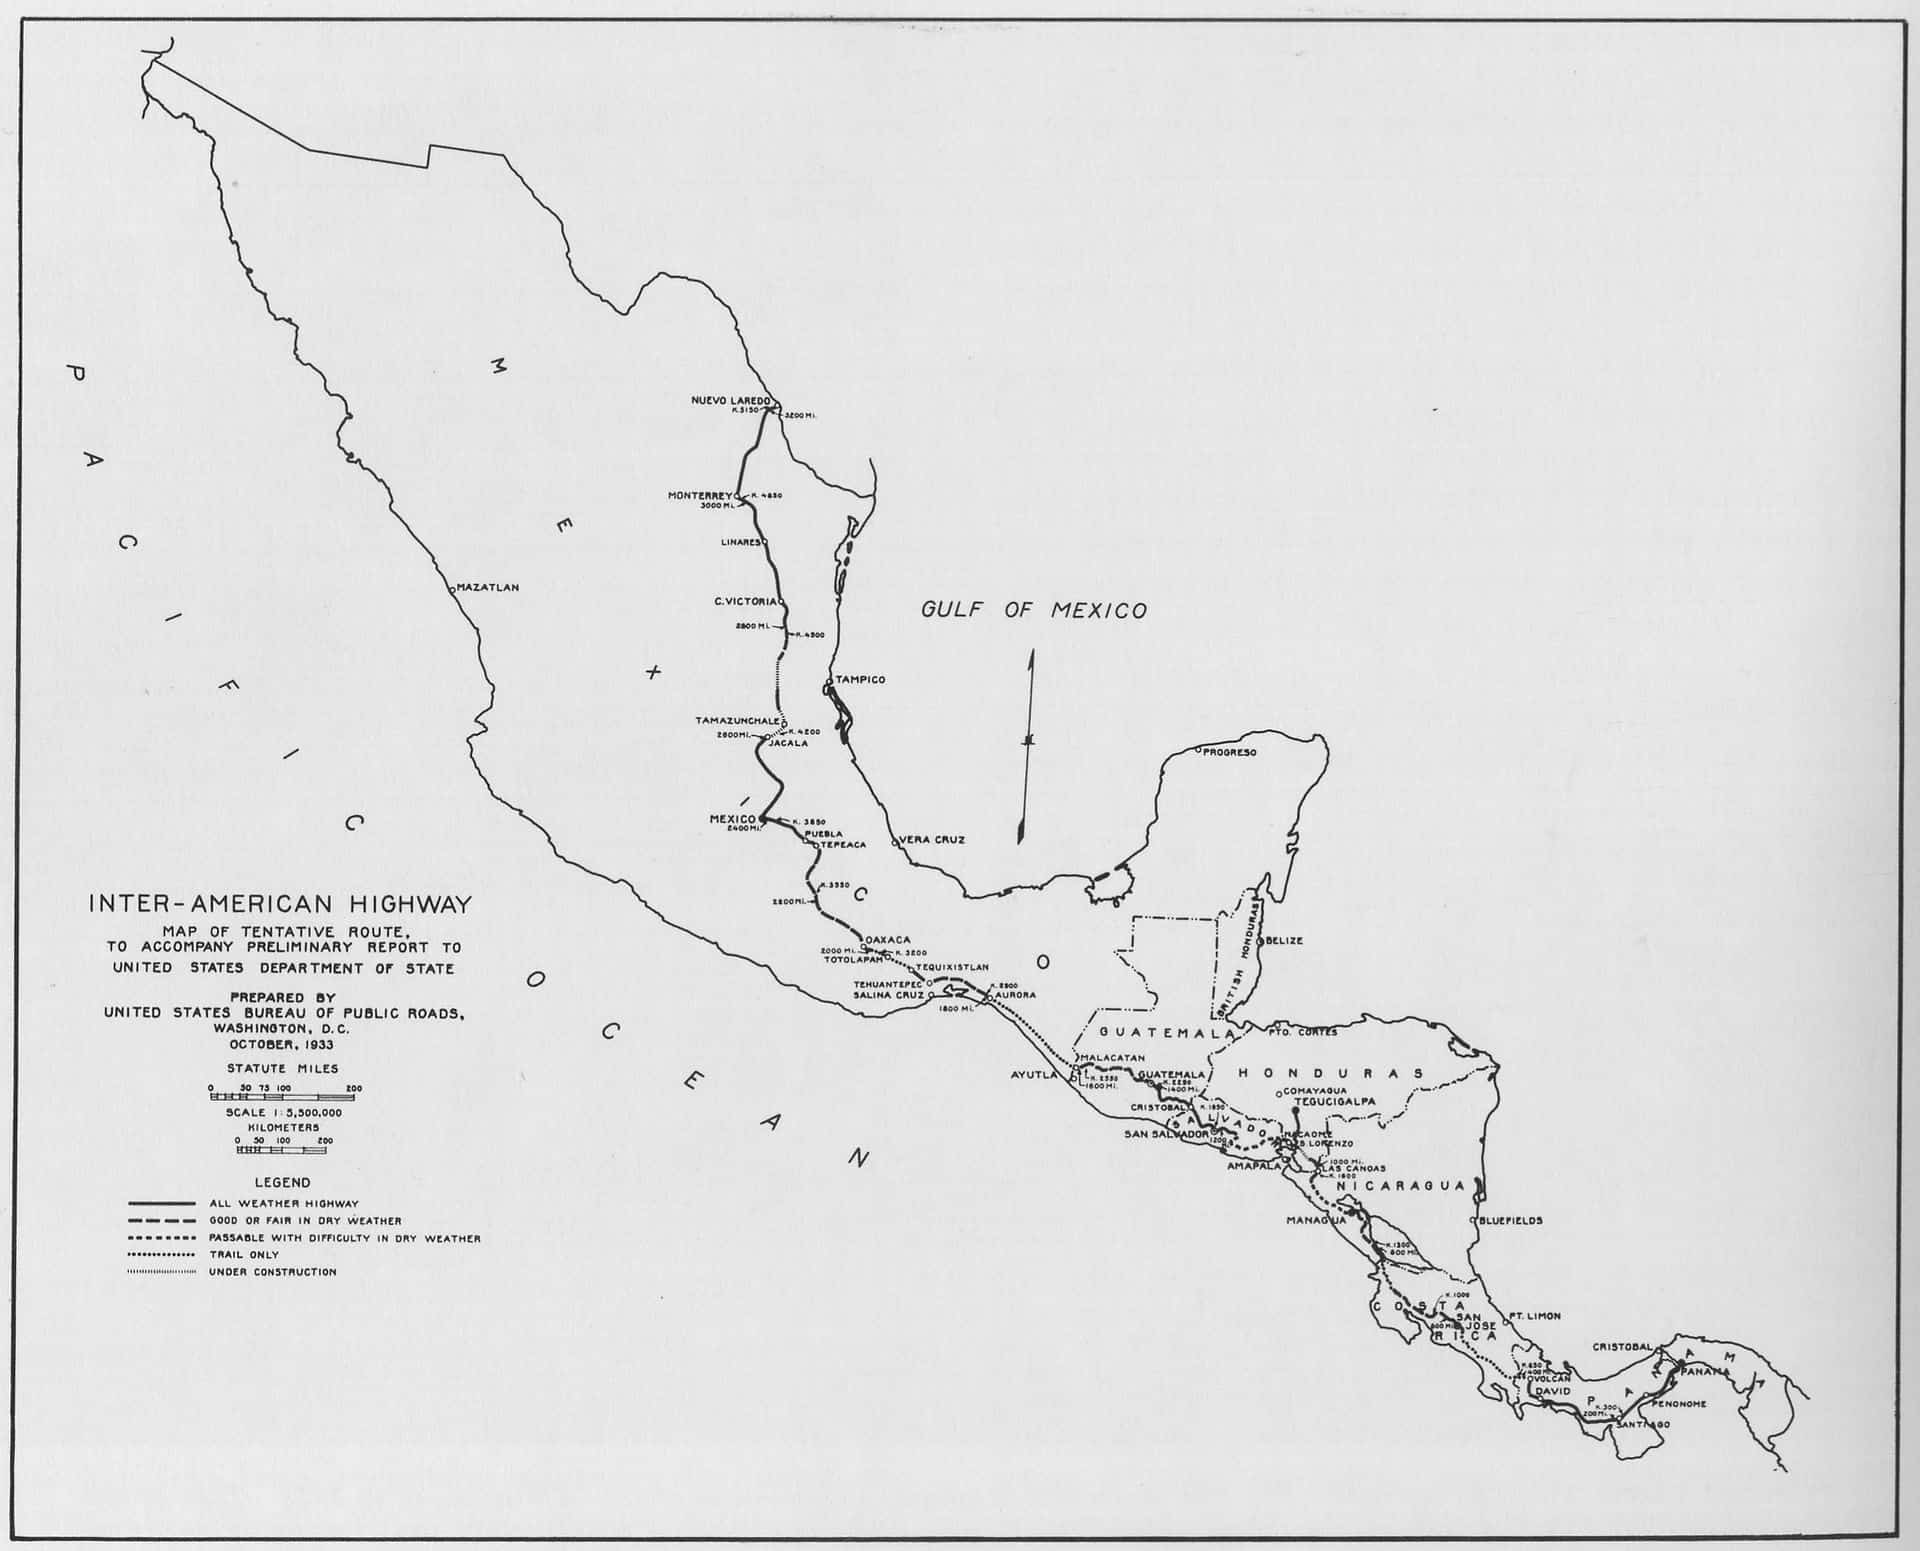 1933 map of the Inter-American Highway